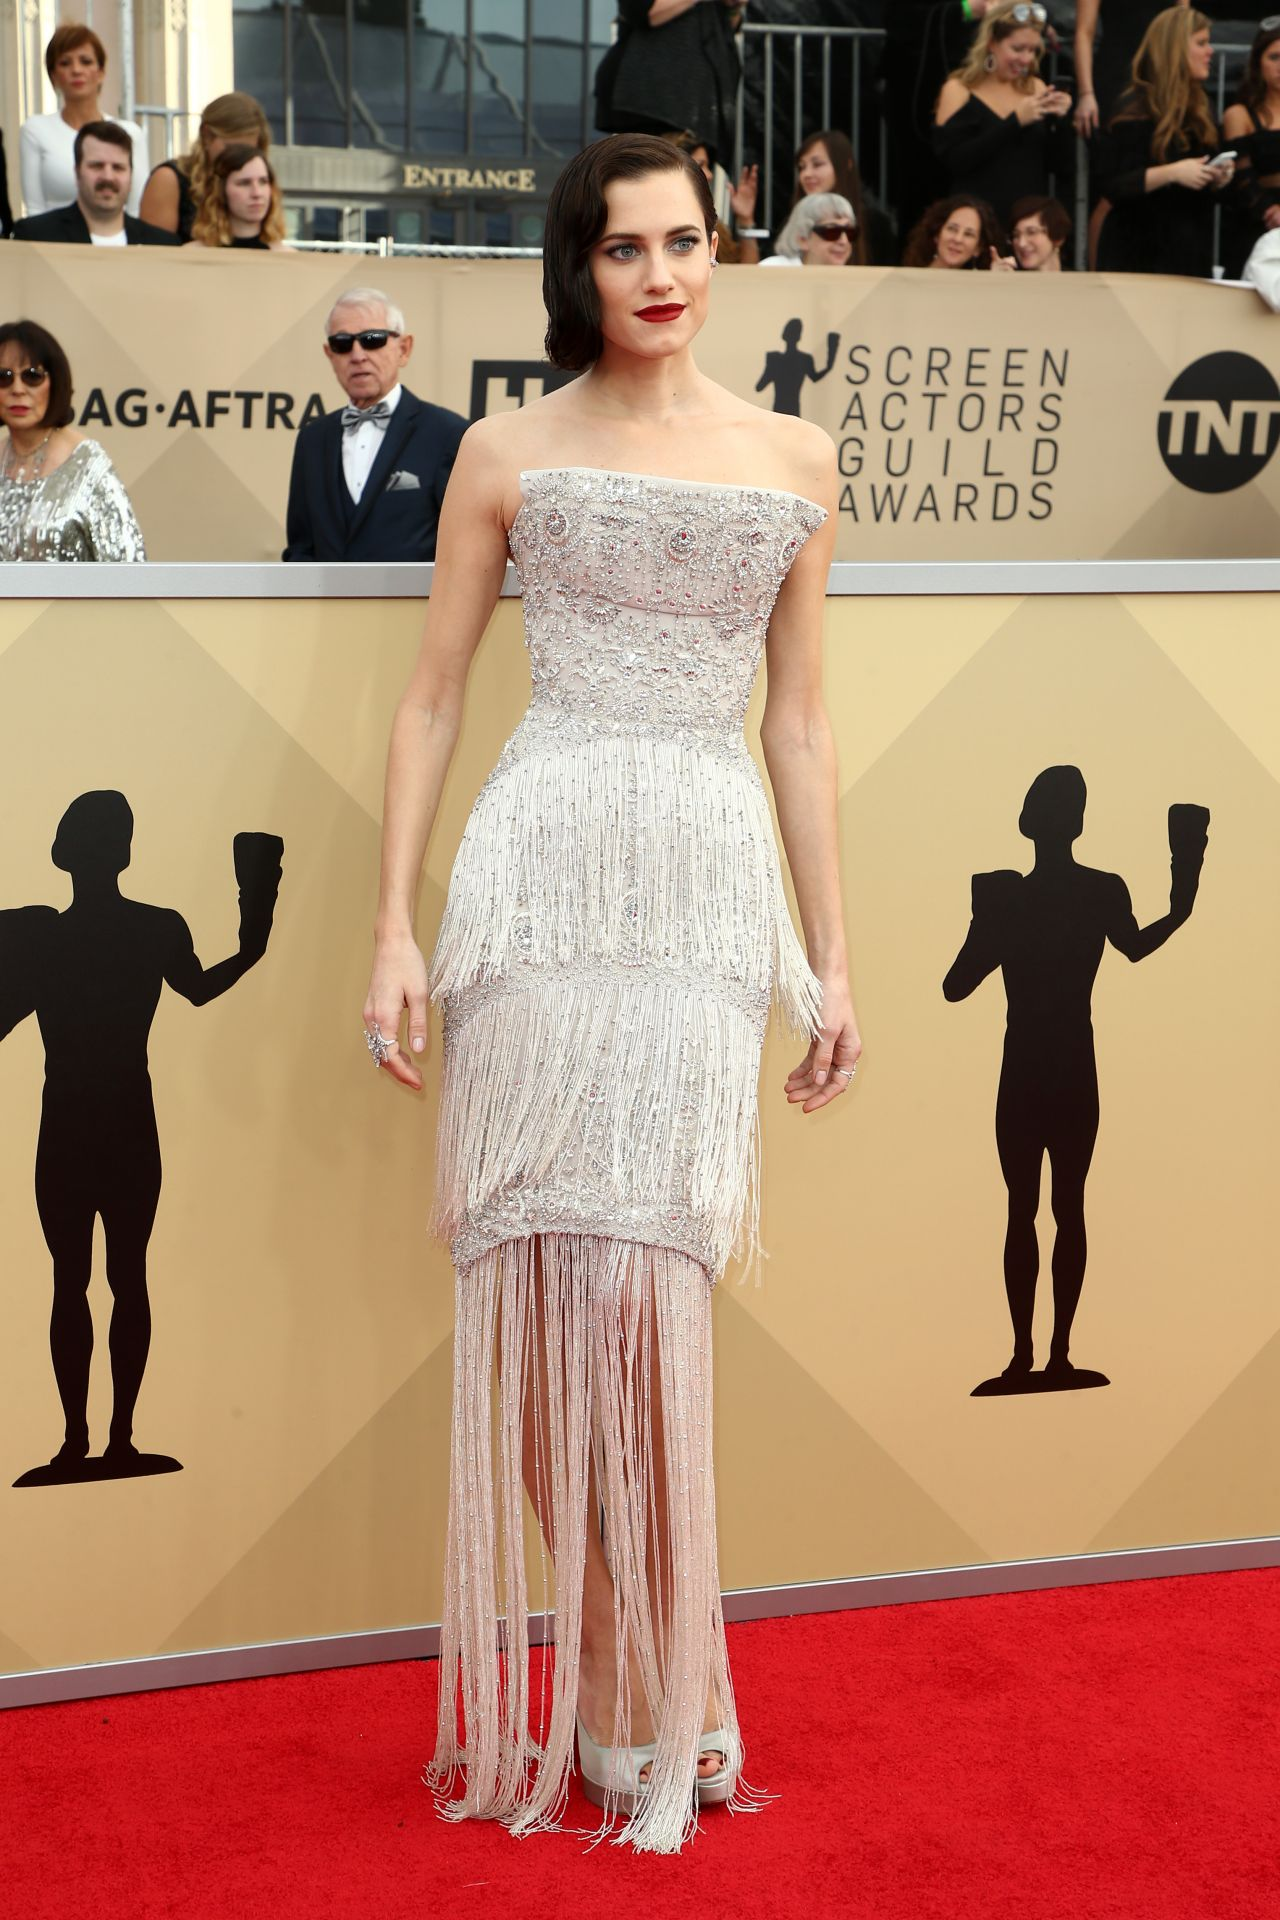 http://celebmafia.com/wp-content/uploads/2018/01/allison-williams-2018-sag-awards-in-la-4.jpg